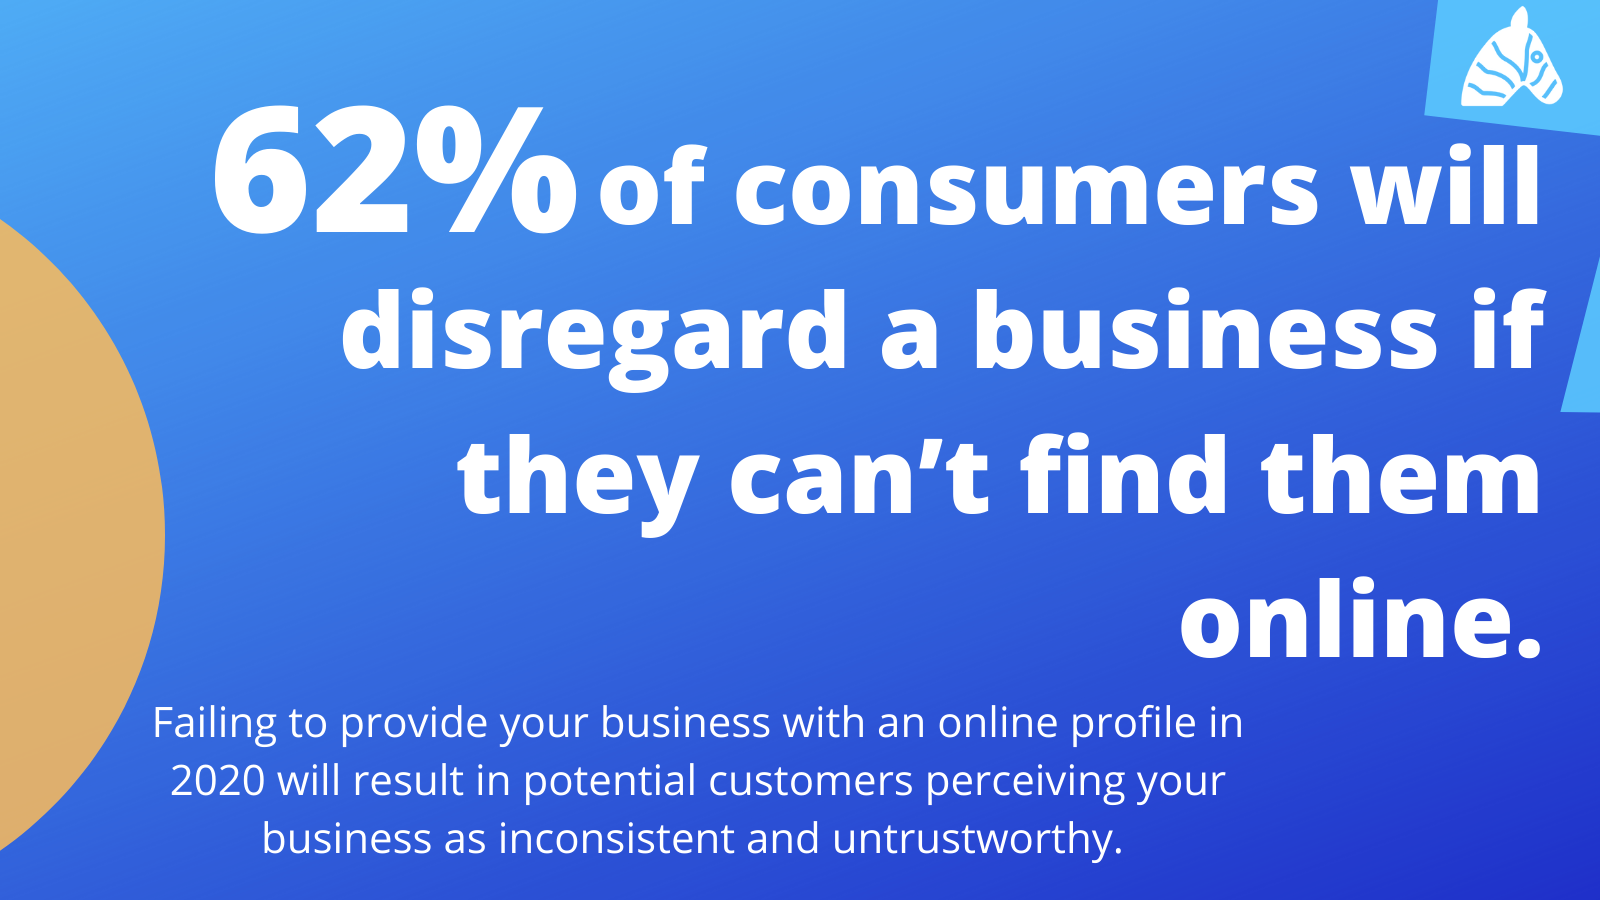 62% of consumers will disregard a business if they can't find them online statistic